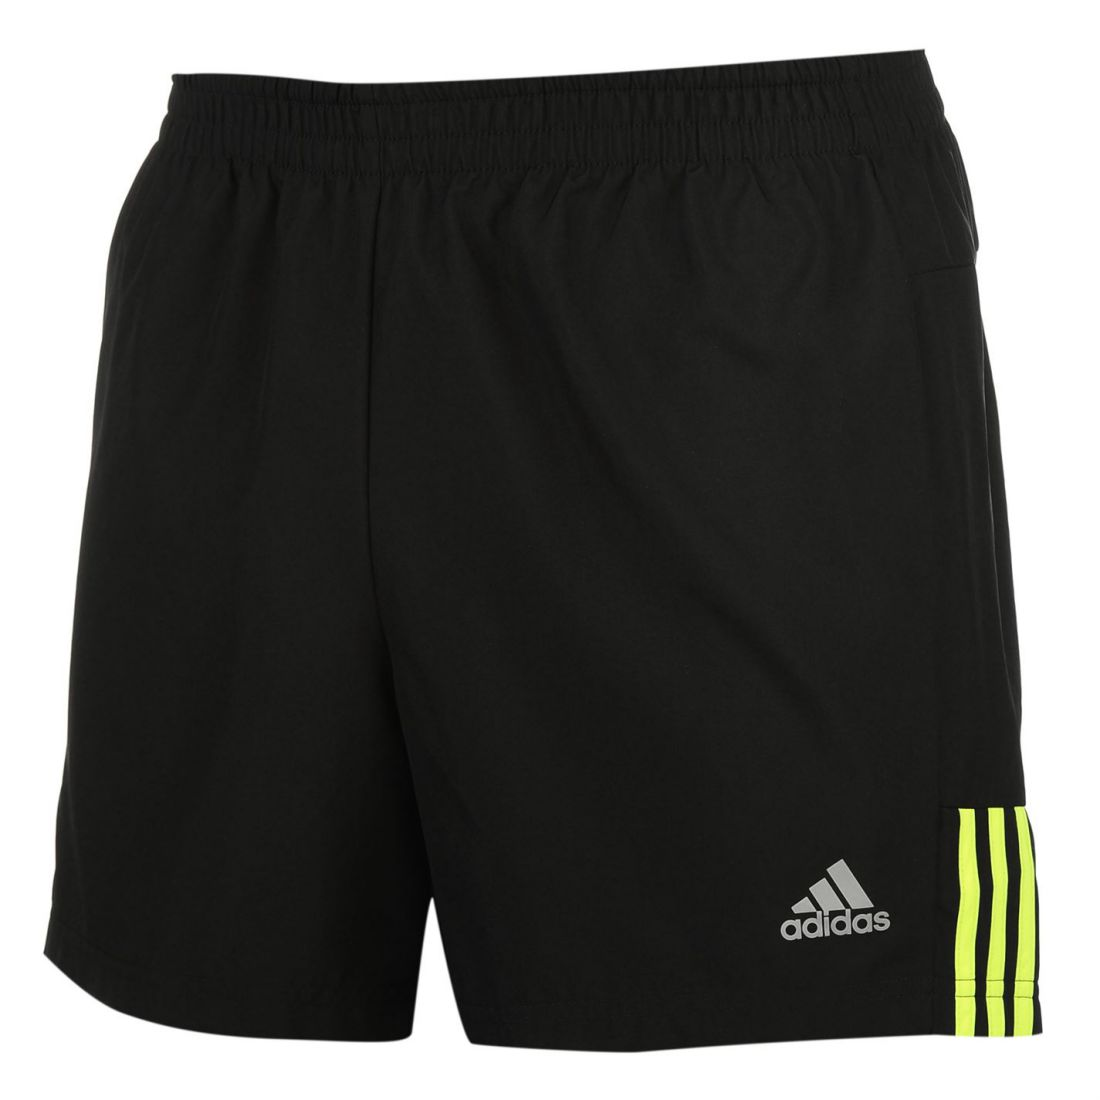 Adidas Pants Shorts Trousers Mens Bottoms 5 Running Gents Inch Questar 2IYD9EHW